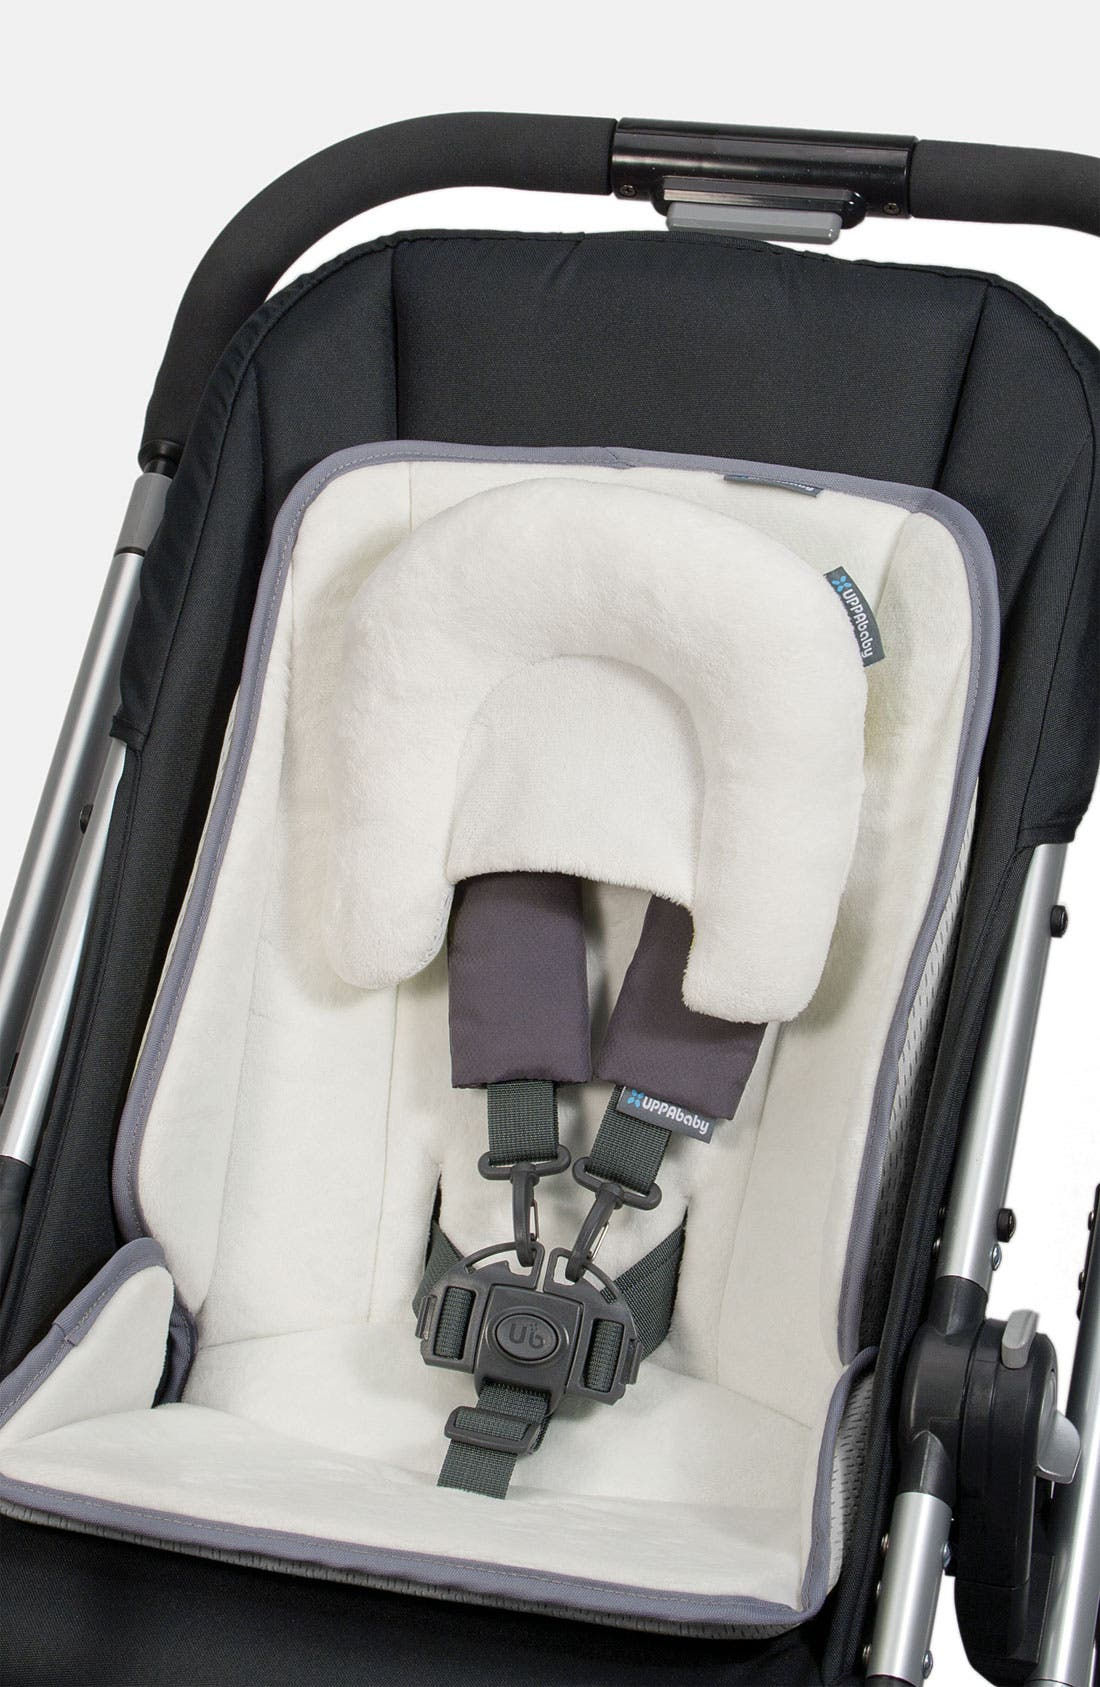 VISTA & CRUZ Infant SnugSeat Inset for Toddler Seat,                             Main thumbnail 1, color,                             WHITE